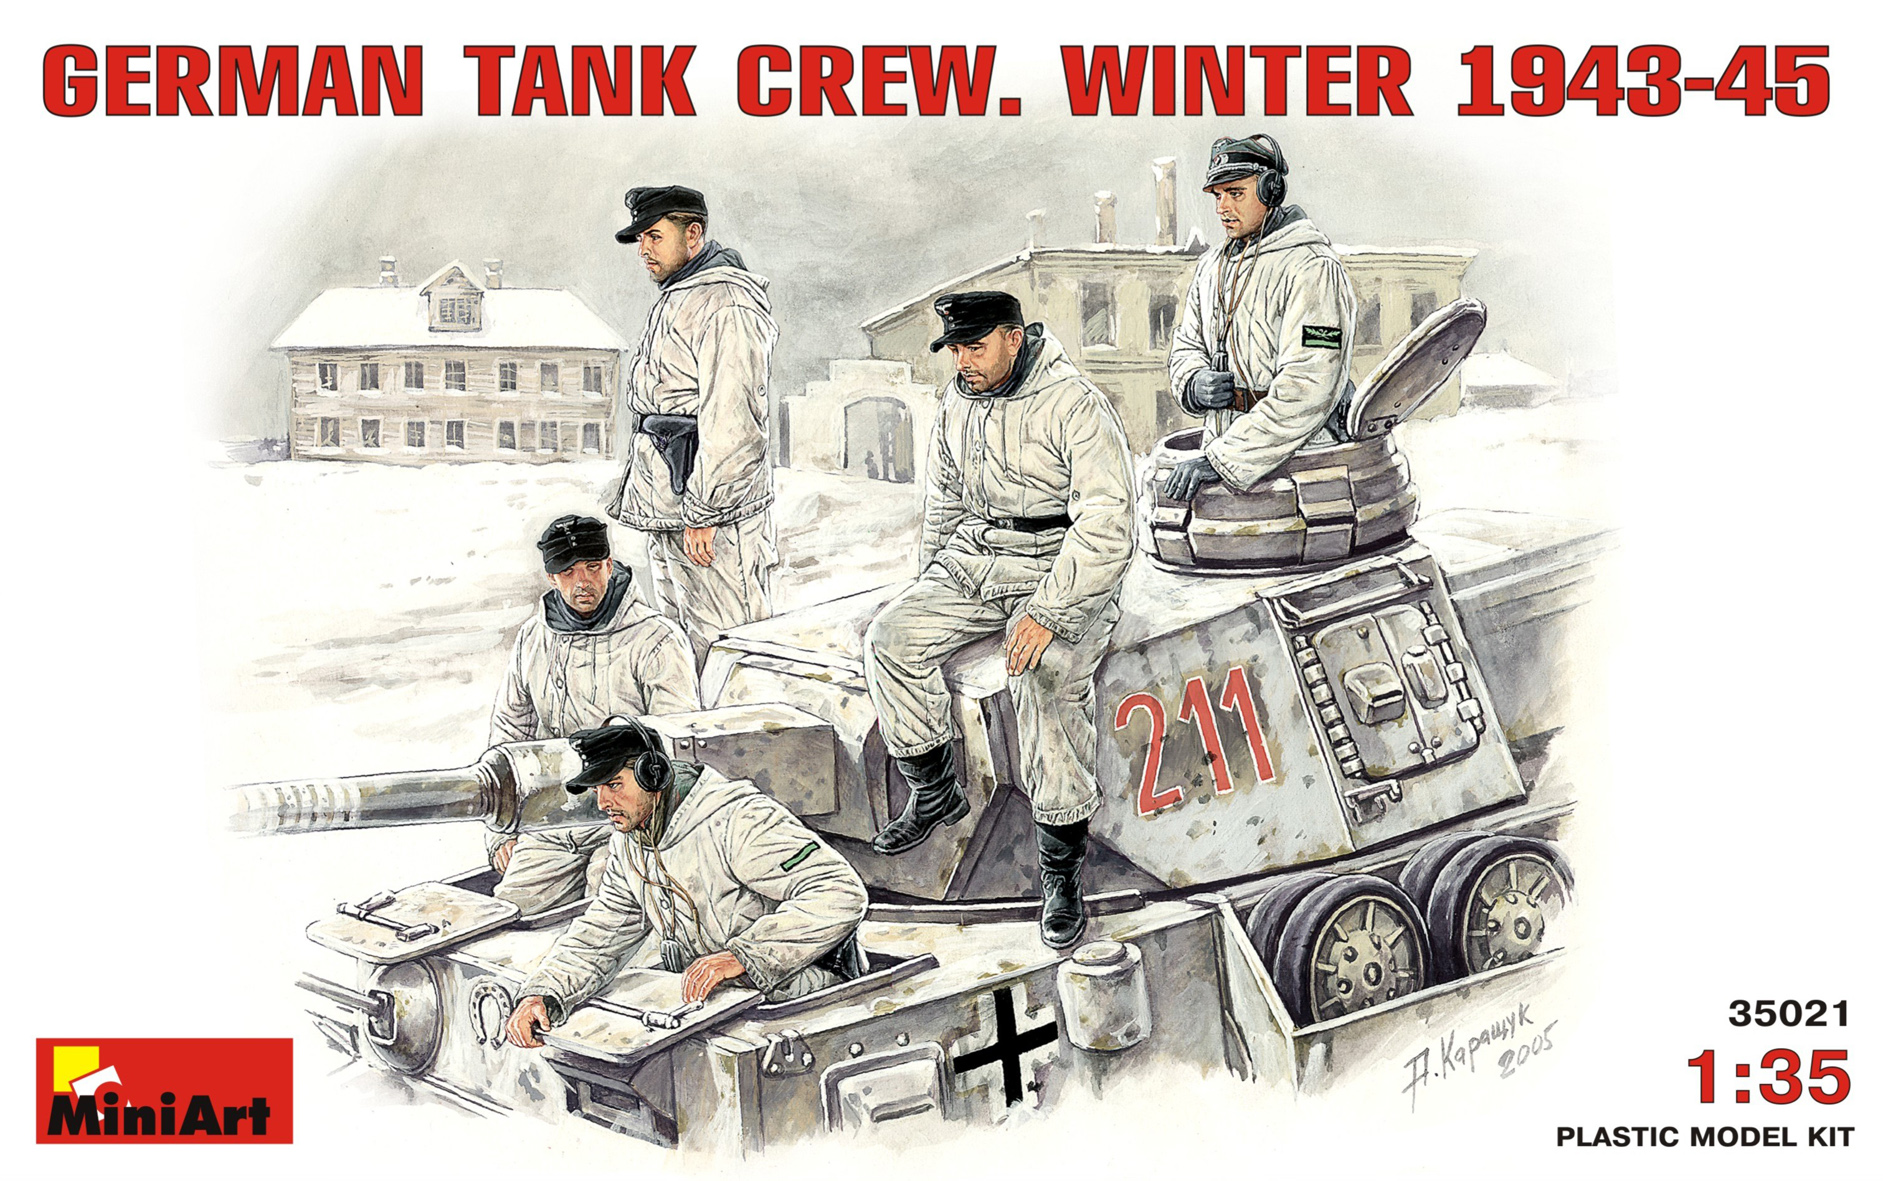 35021 GERMAN TANK CREW. WINTER 1943-45